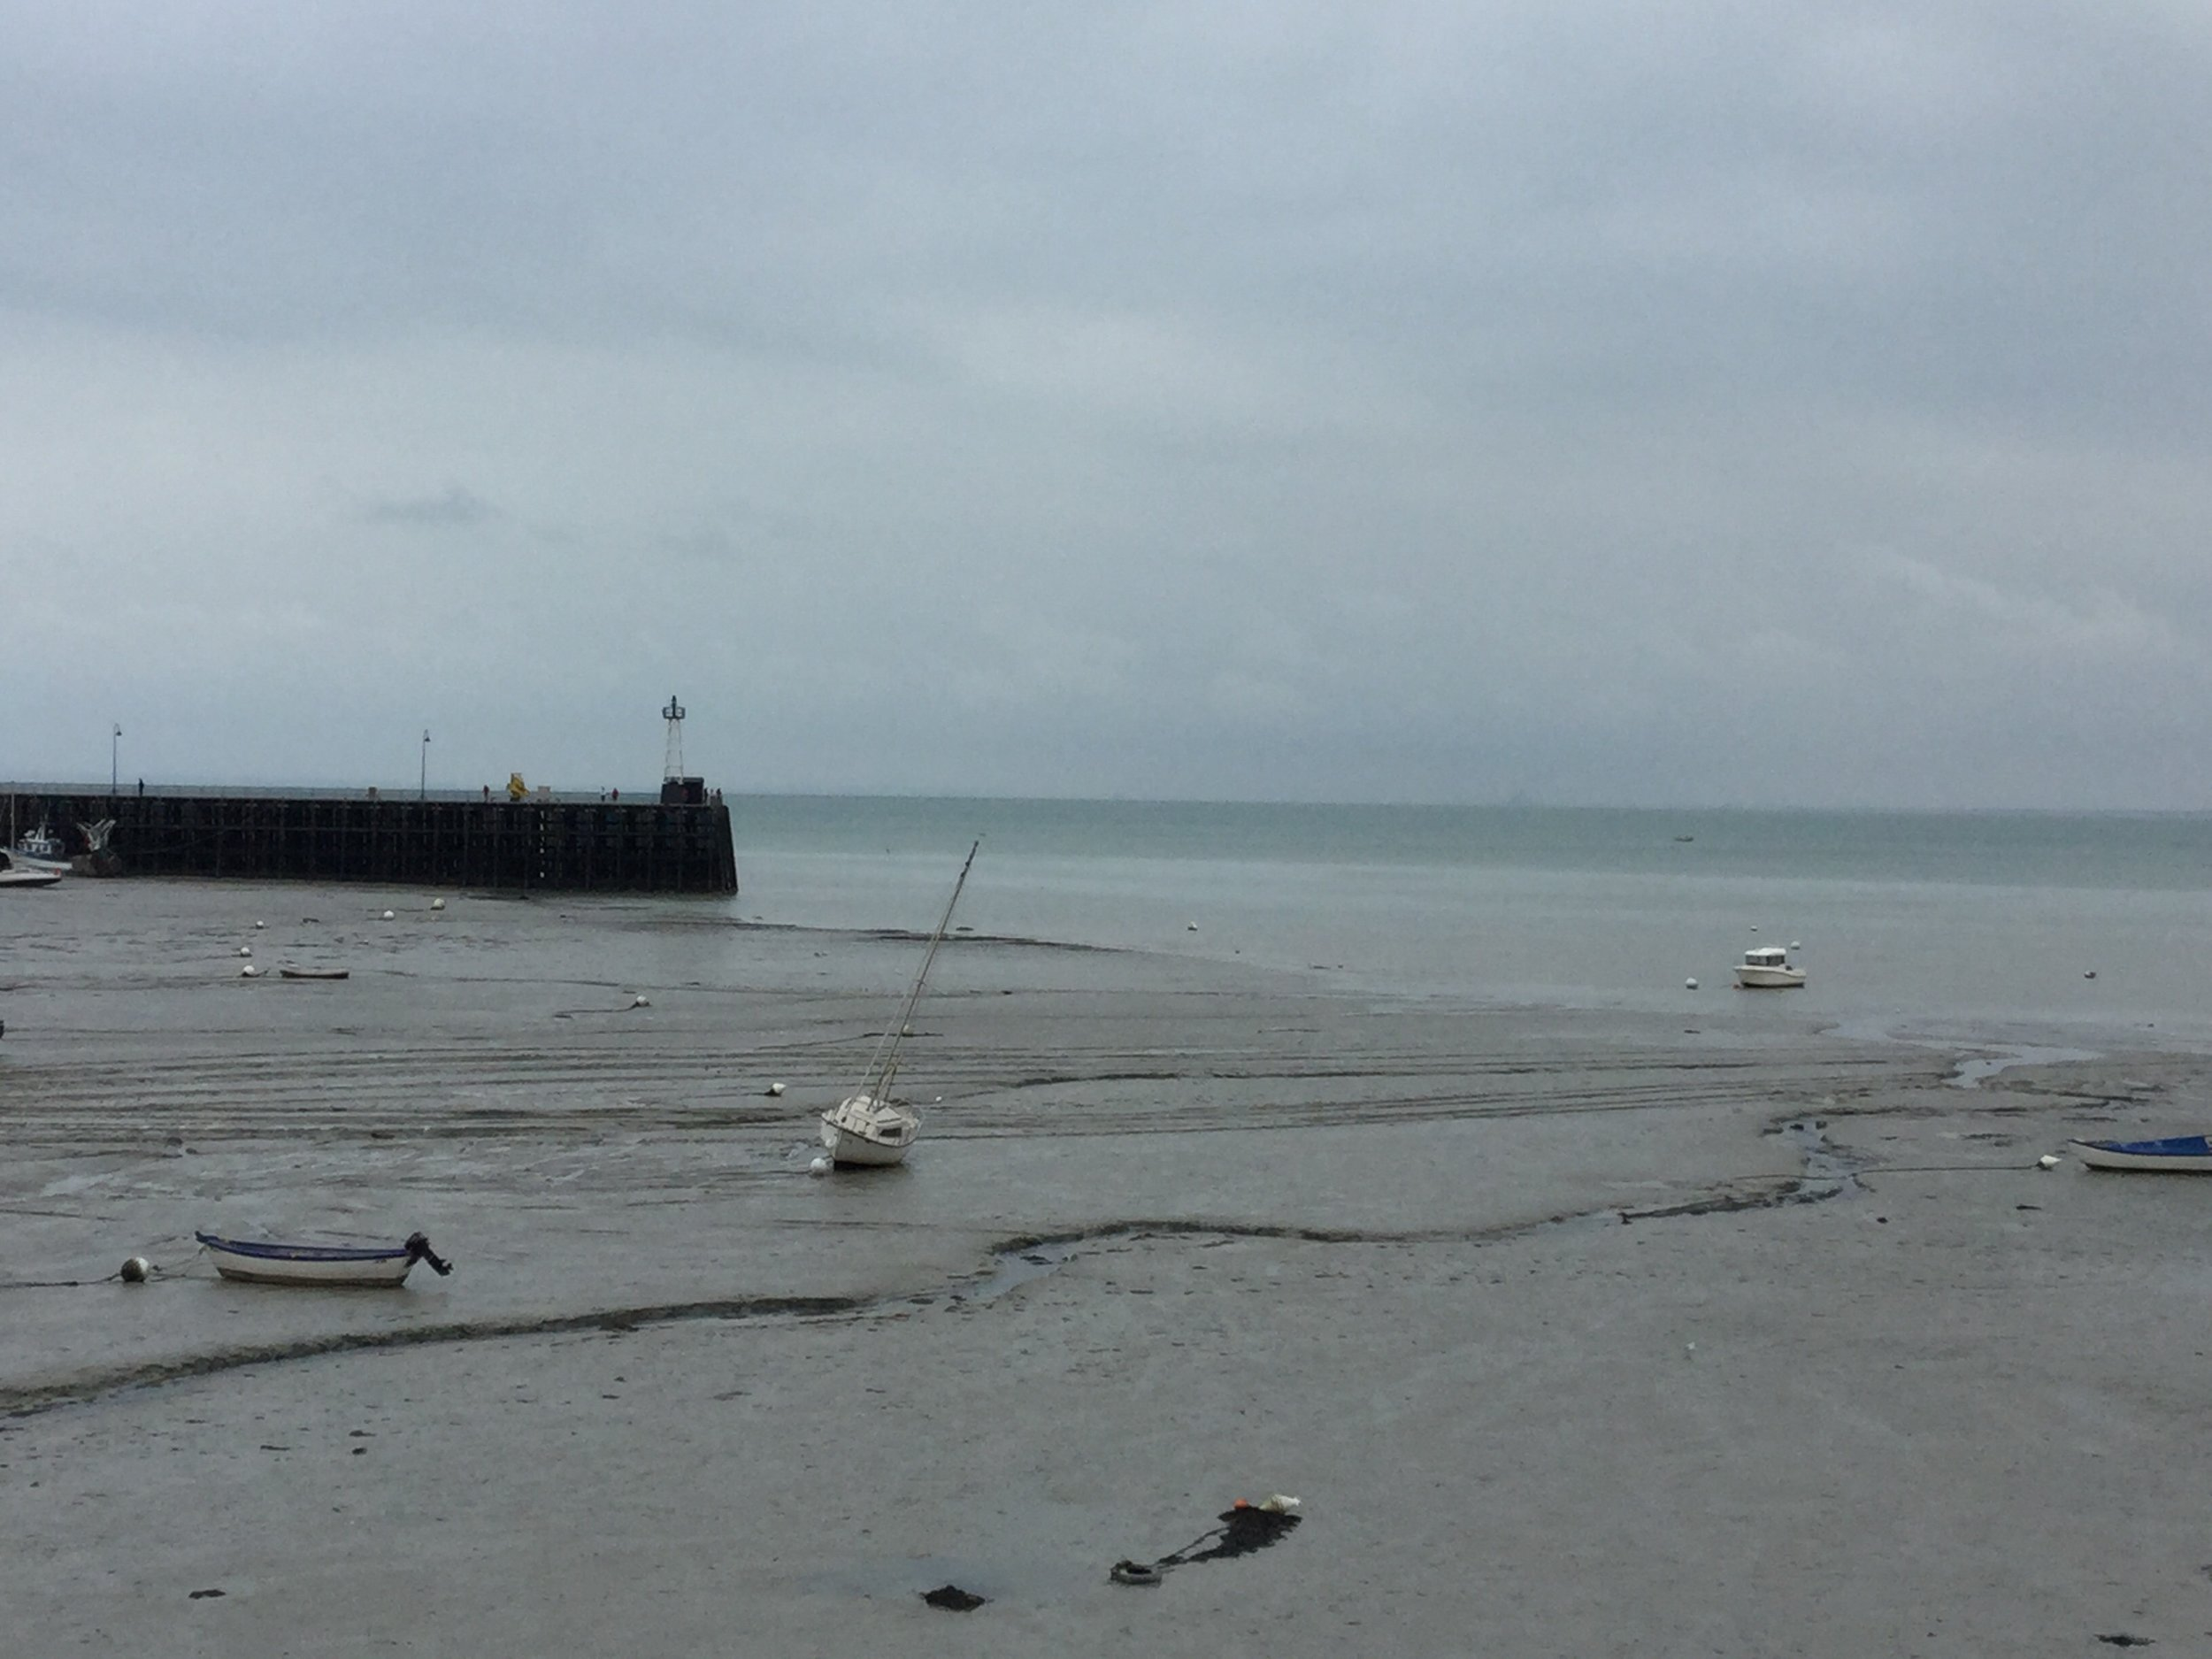 Mont St Michel is barely visible on the horizon.